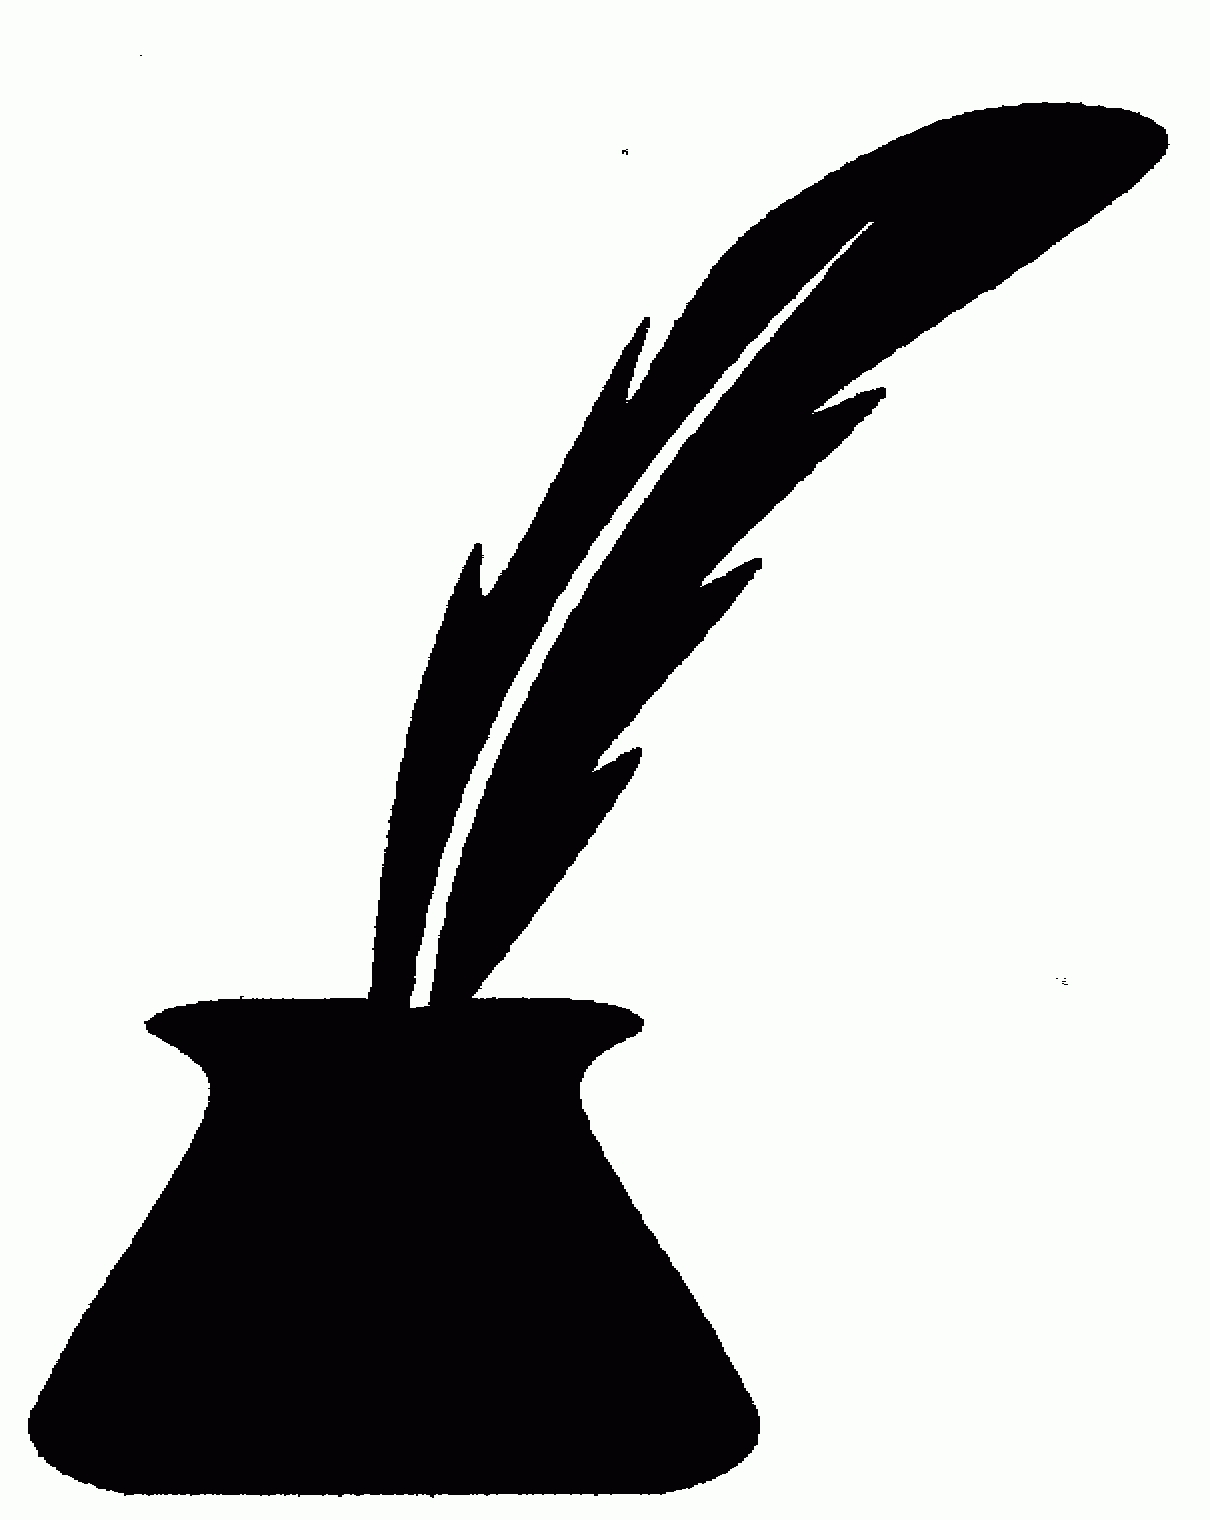 Feather Pen Clipart Free Clipart Images Image 2 - Clipartix Pertaining To Feather  Pen Clipart Png - Feather Pen PNG Black And White